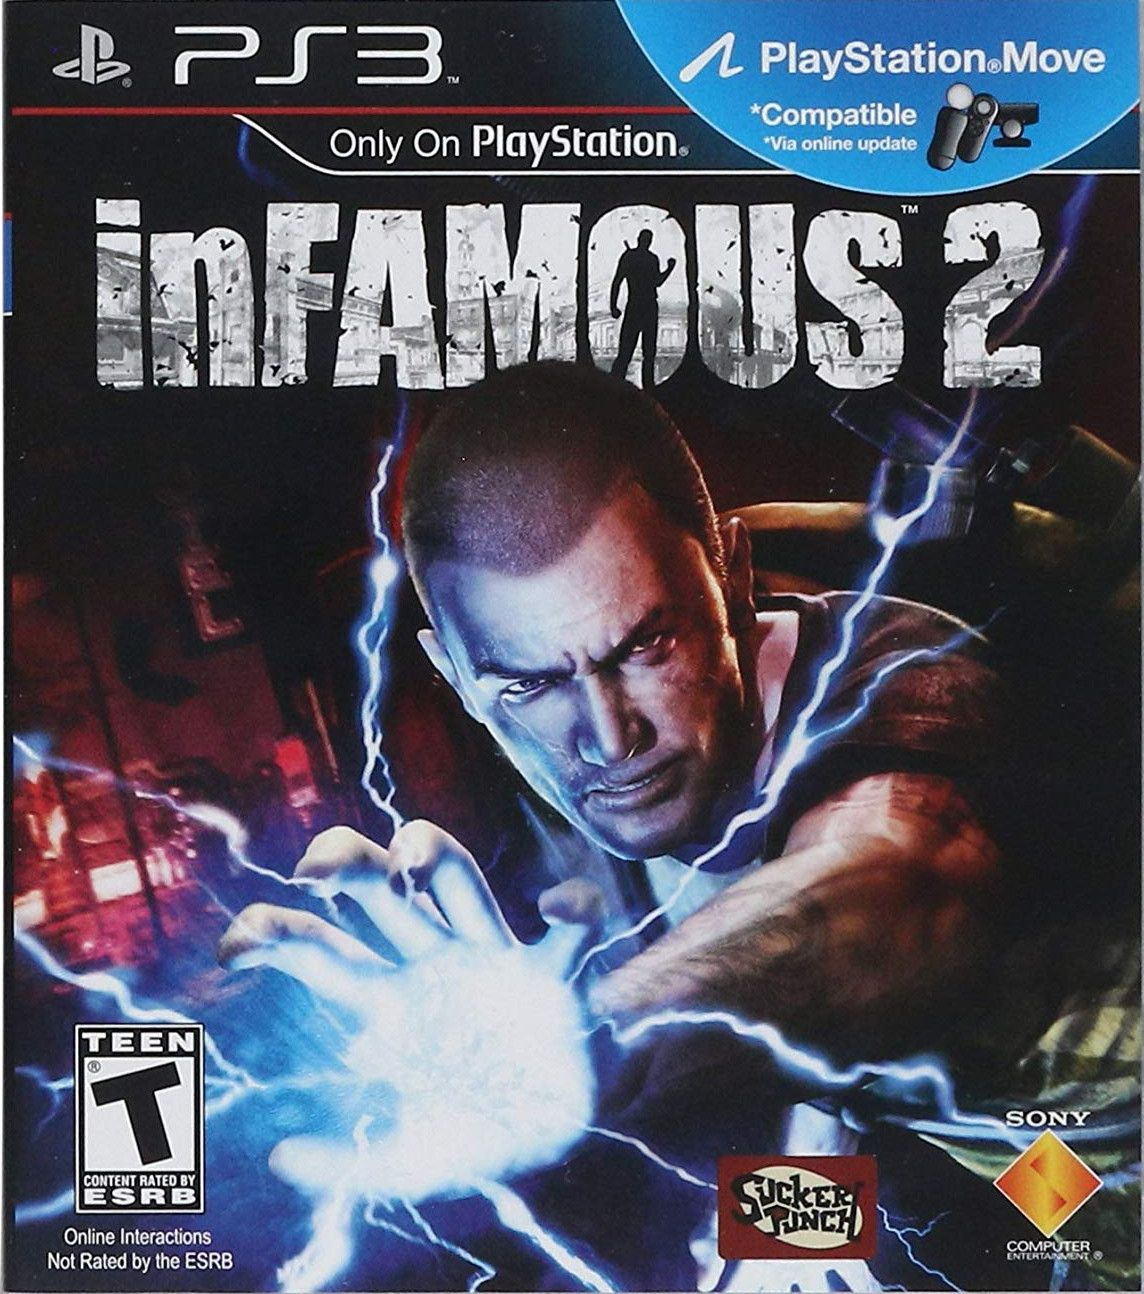 Infamous 2 | Video Game Collection | Video game collection